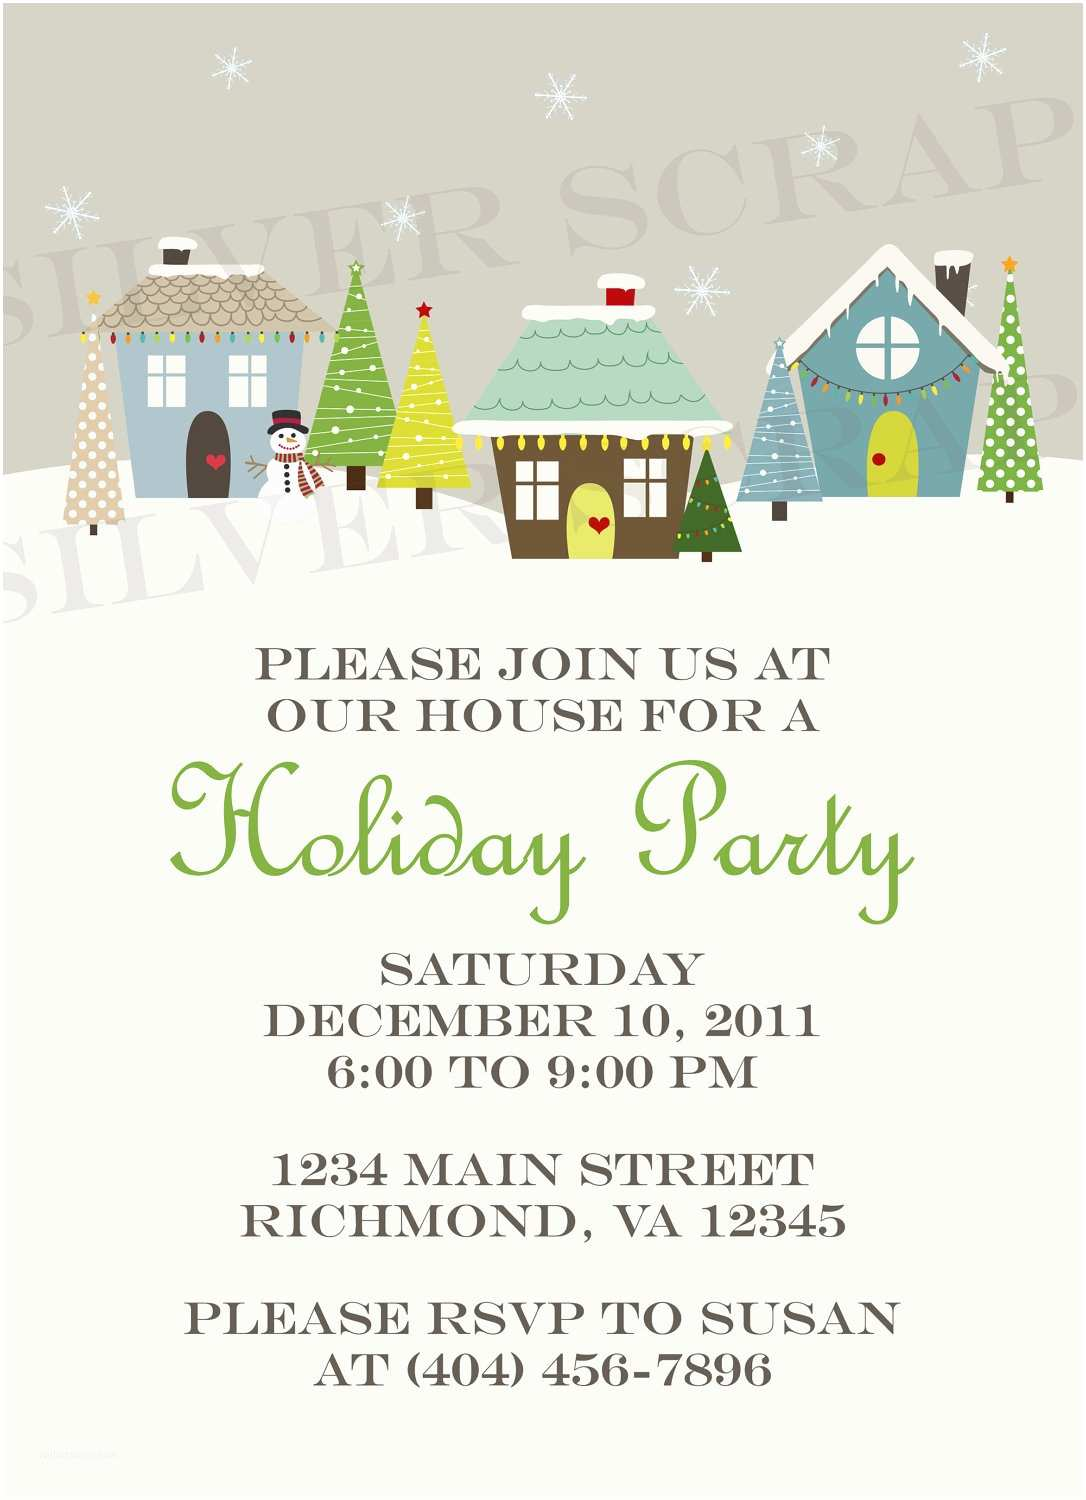 Office Party Invitation Email Email Christmas Invitations Oxyline 326cb04fbe37